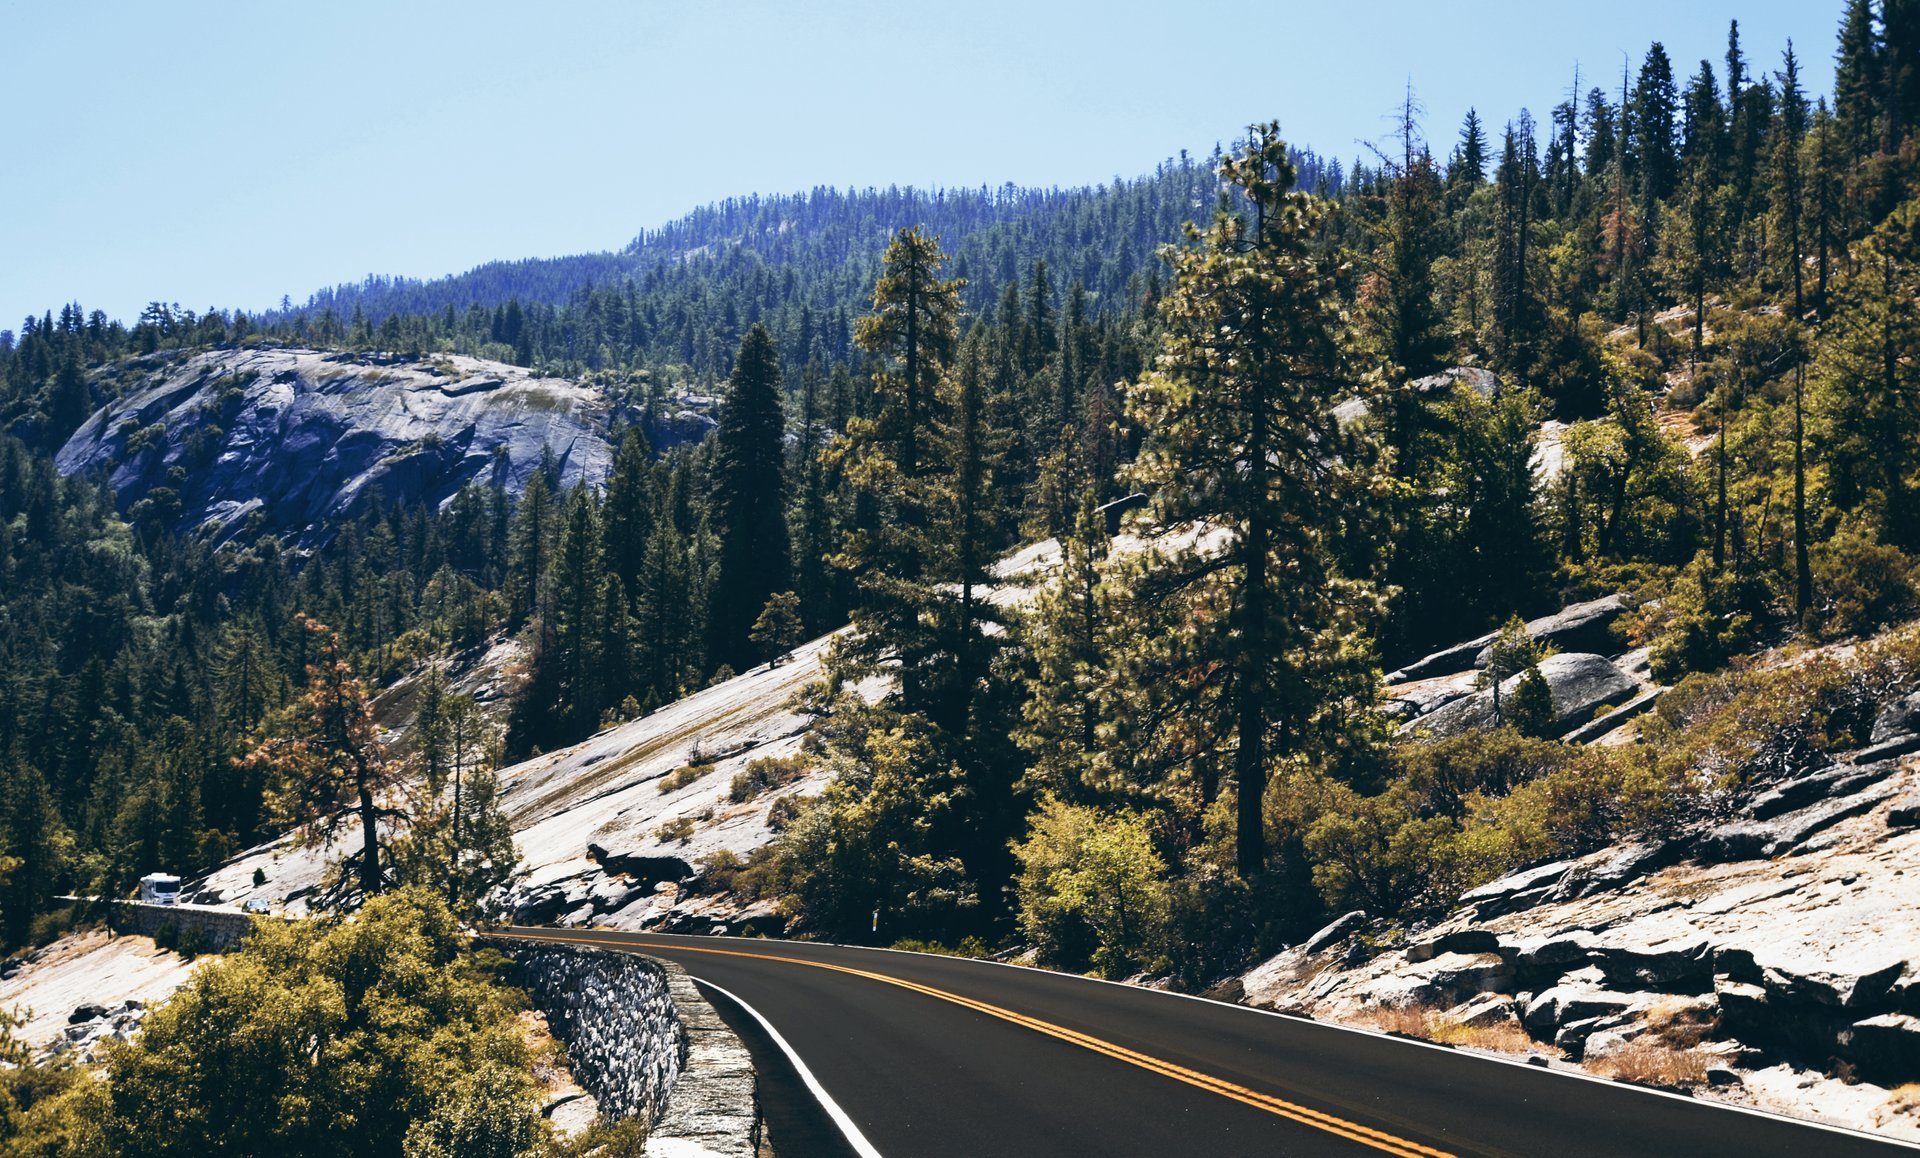 The road of Yosemite National Park 2019